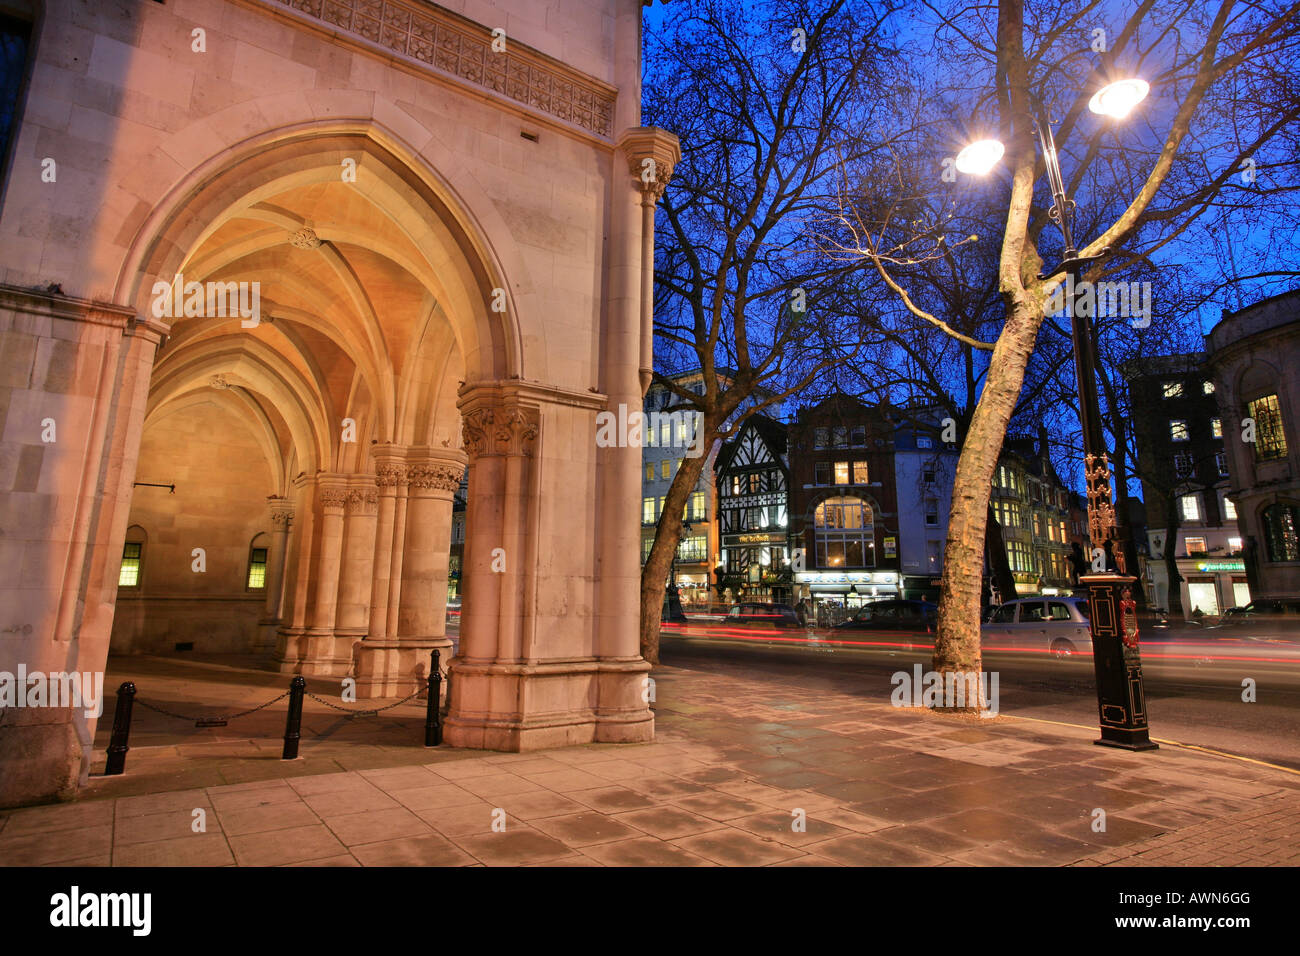 Arcades of the Royal Courts of Justice and Tudor houses on Strand, City of Westminster, London, UK - Stock Image